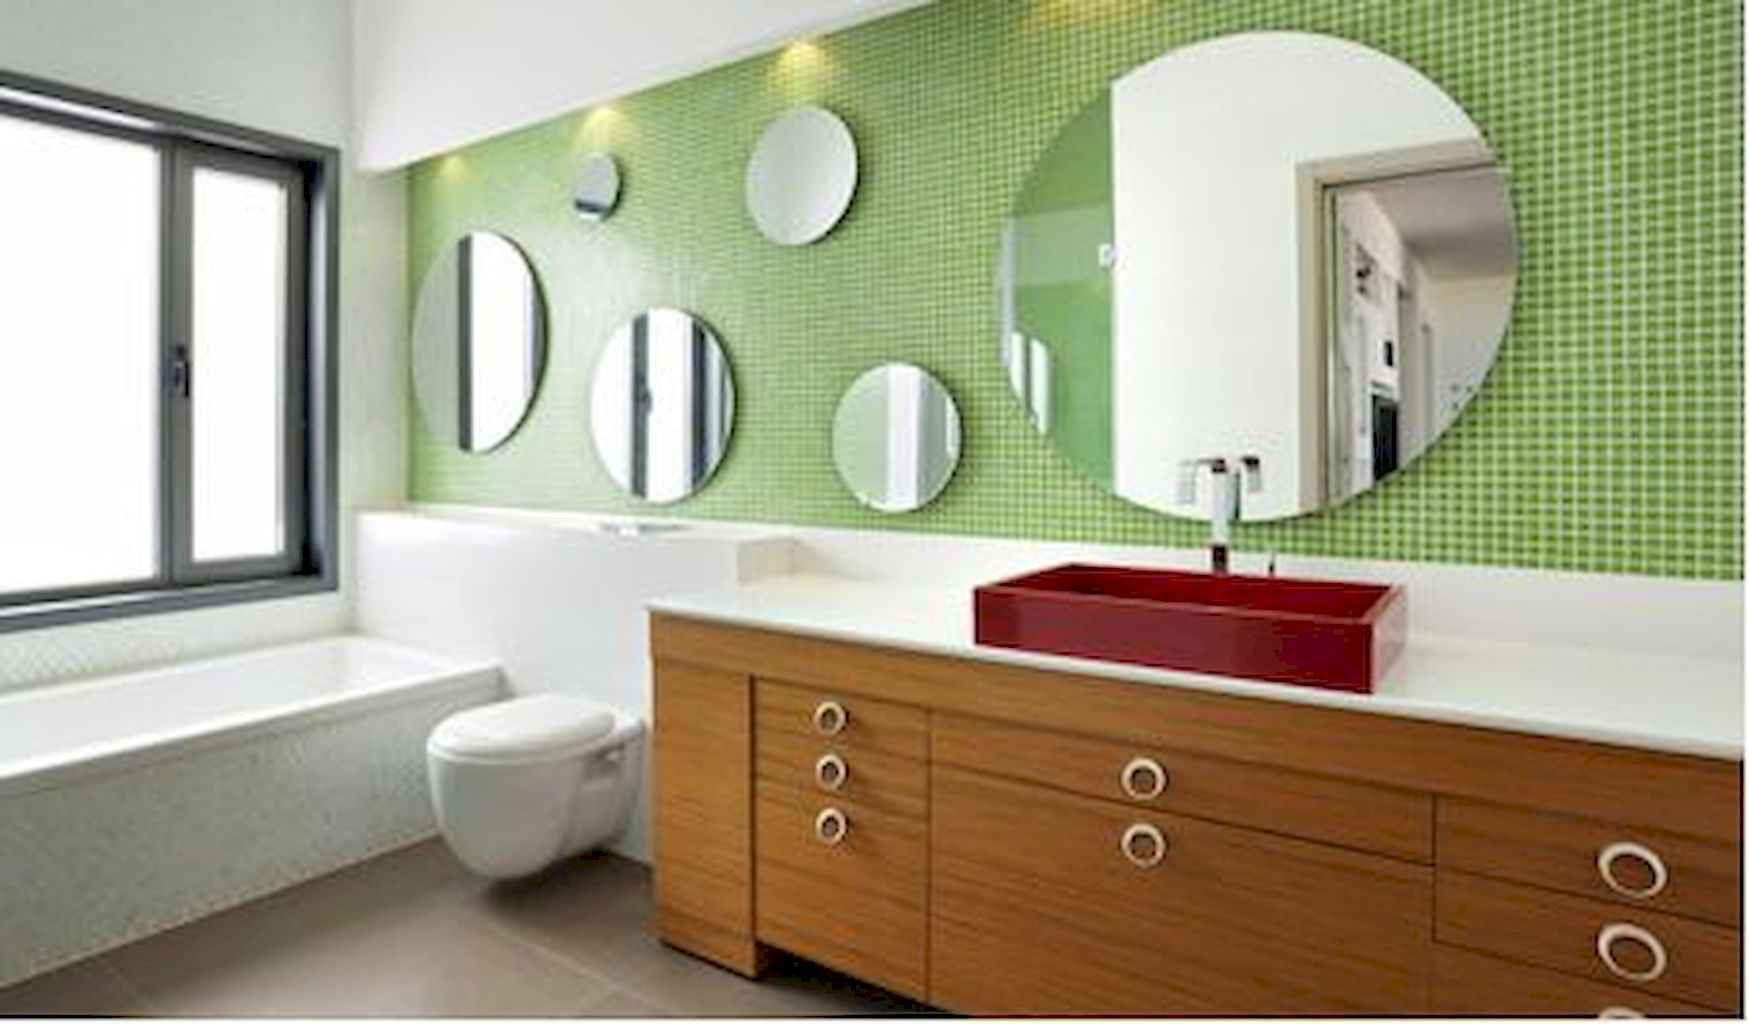 55 cool and relax bathroom design ideas (2)